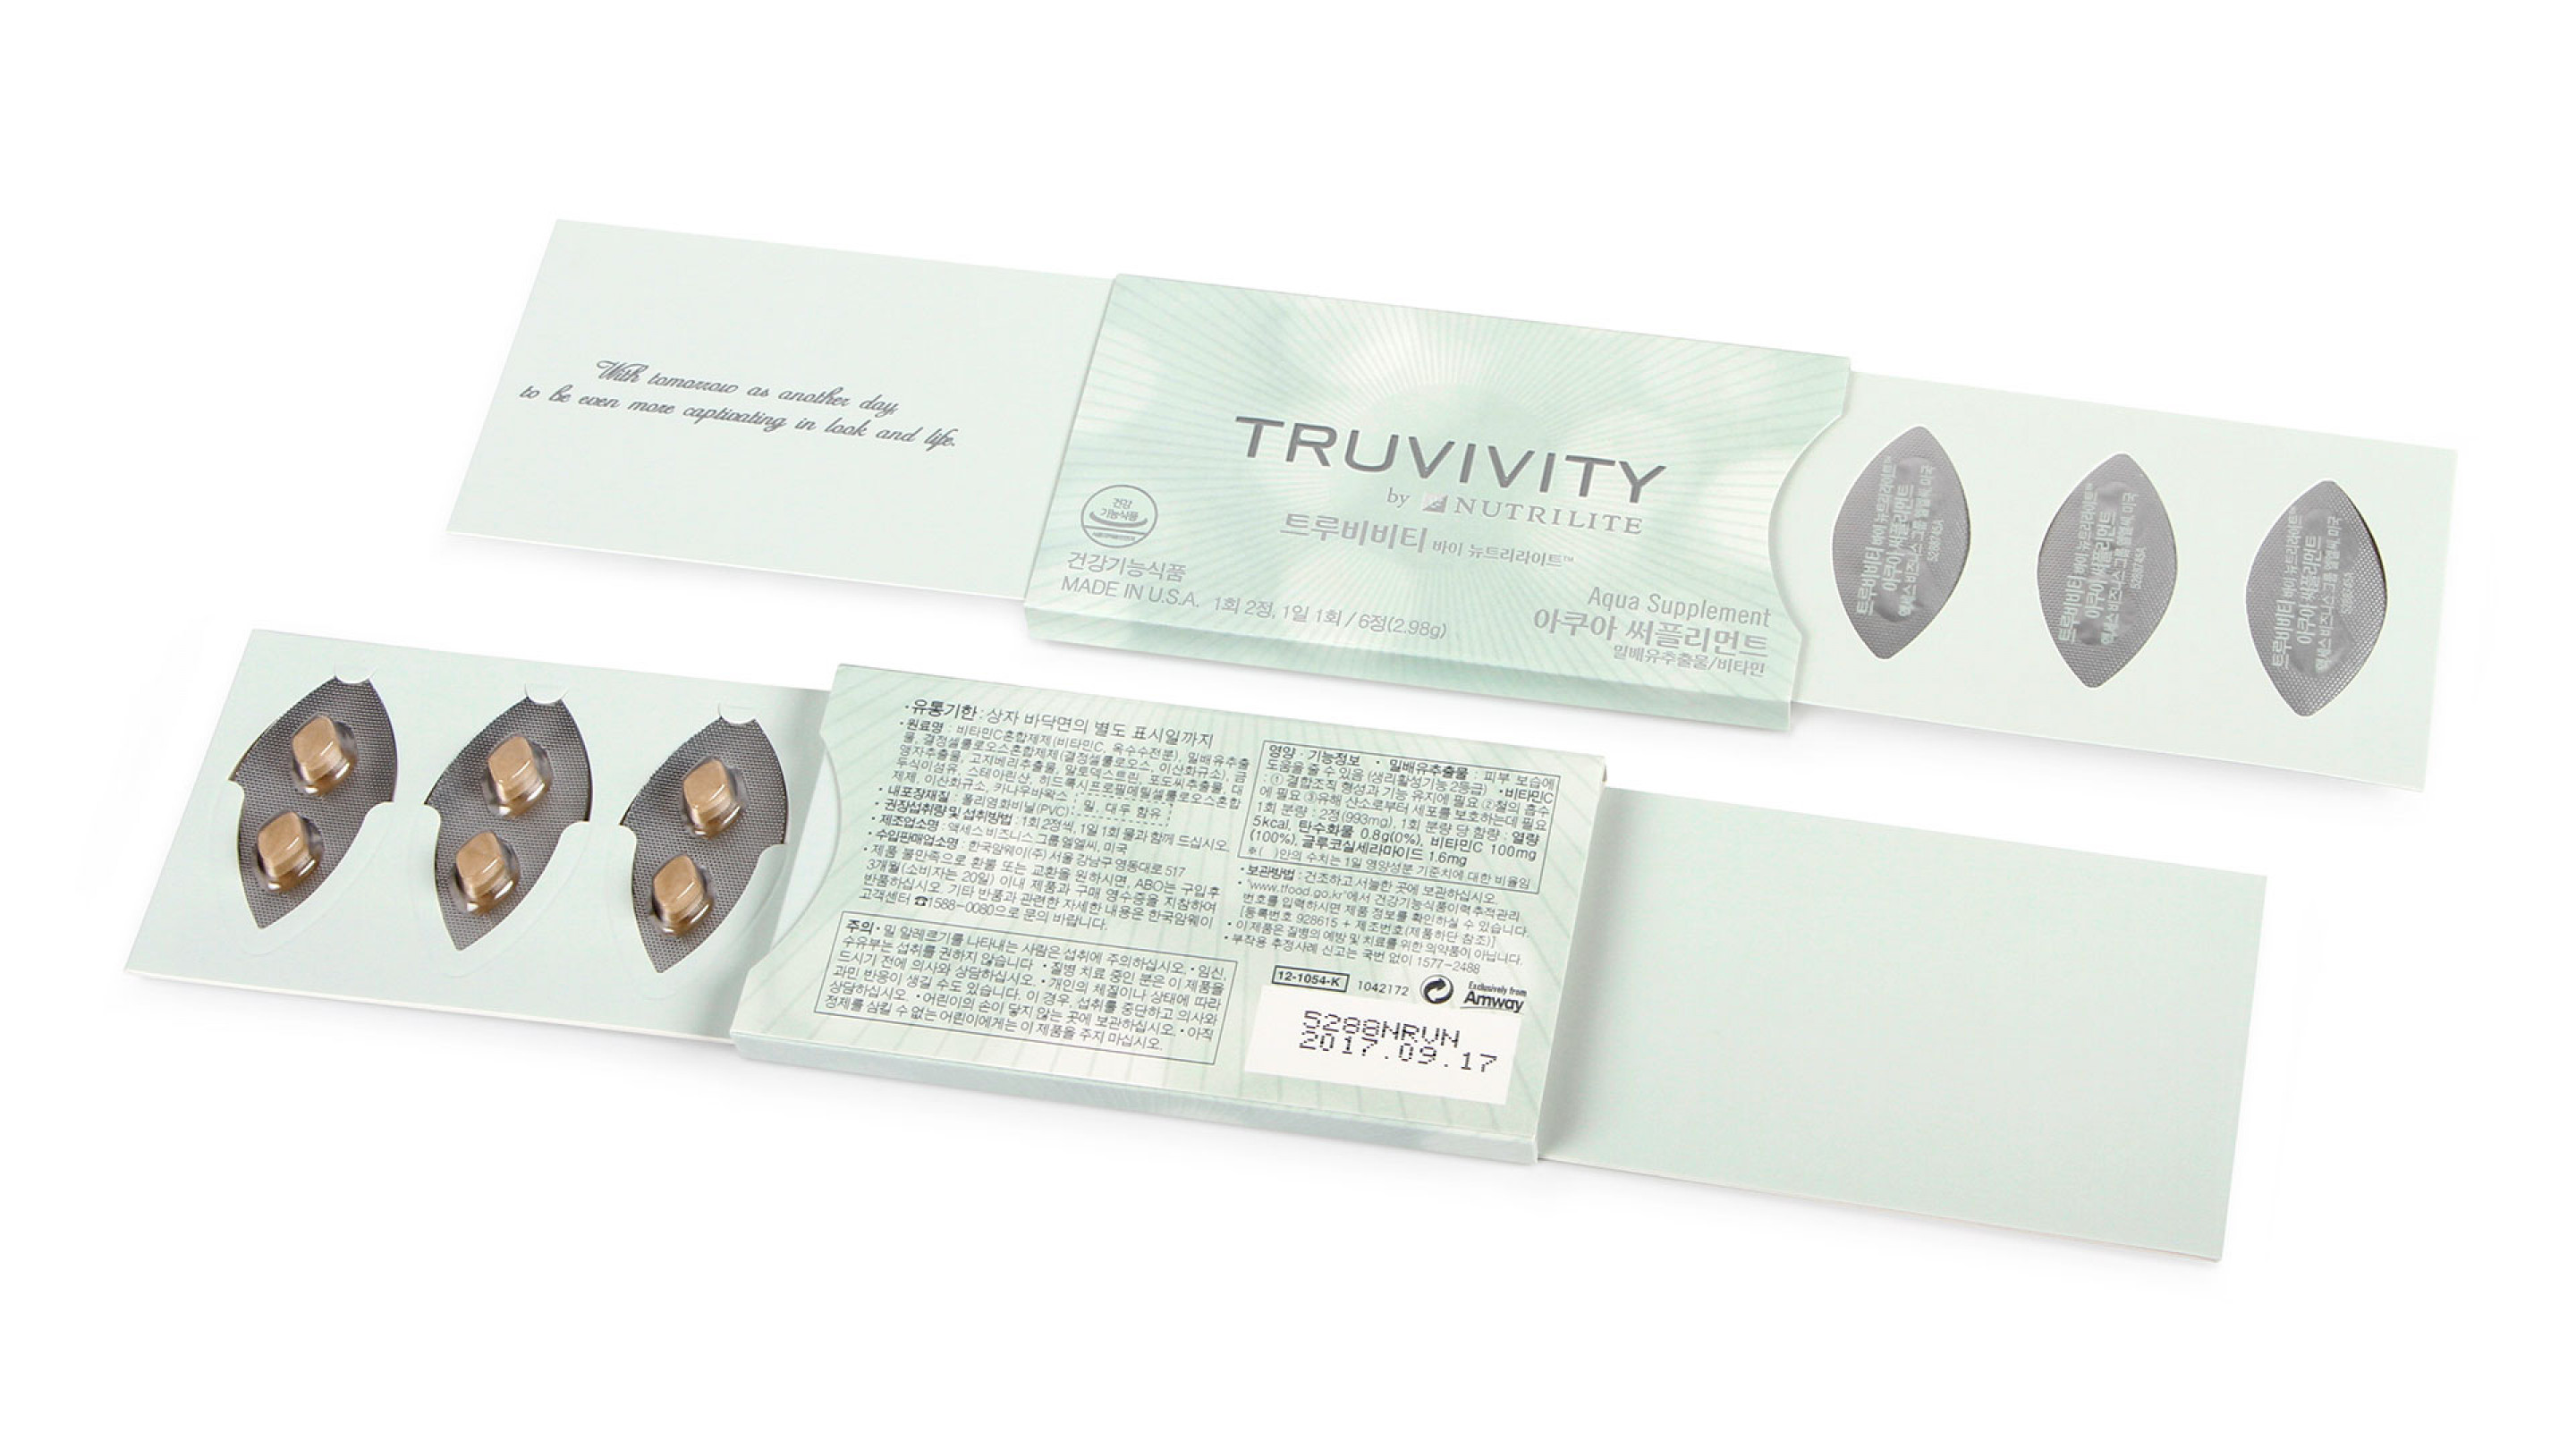 Amway Truvivity by Nutrilite Blister Packaging